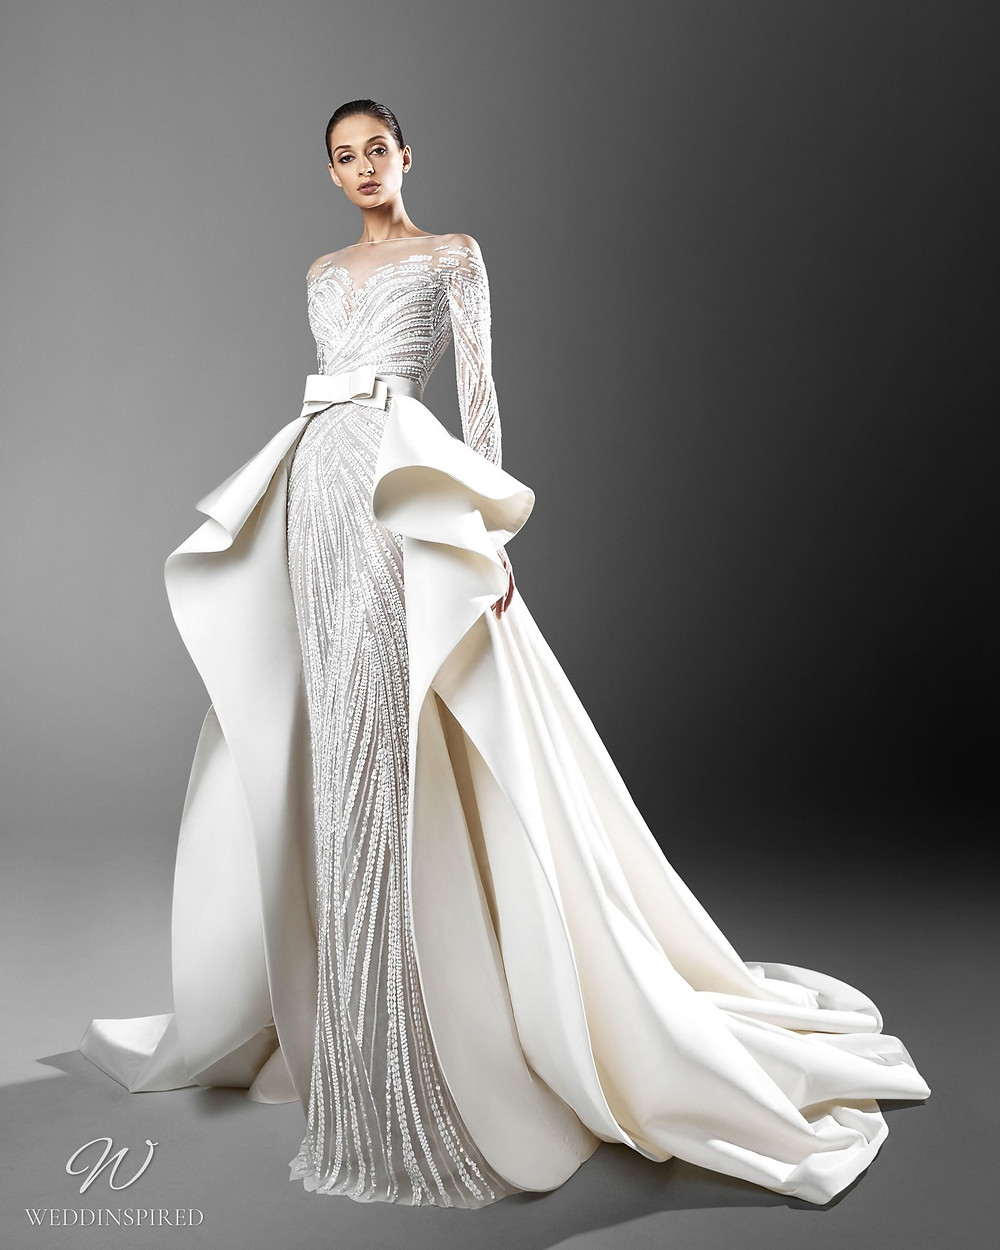 A Zuhair Murad mermaid wedding dress with crystals, a detachable skirt and an illusion neckline